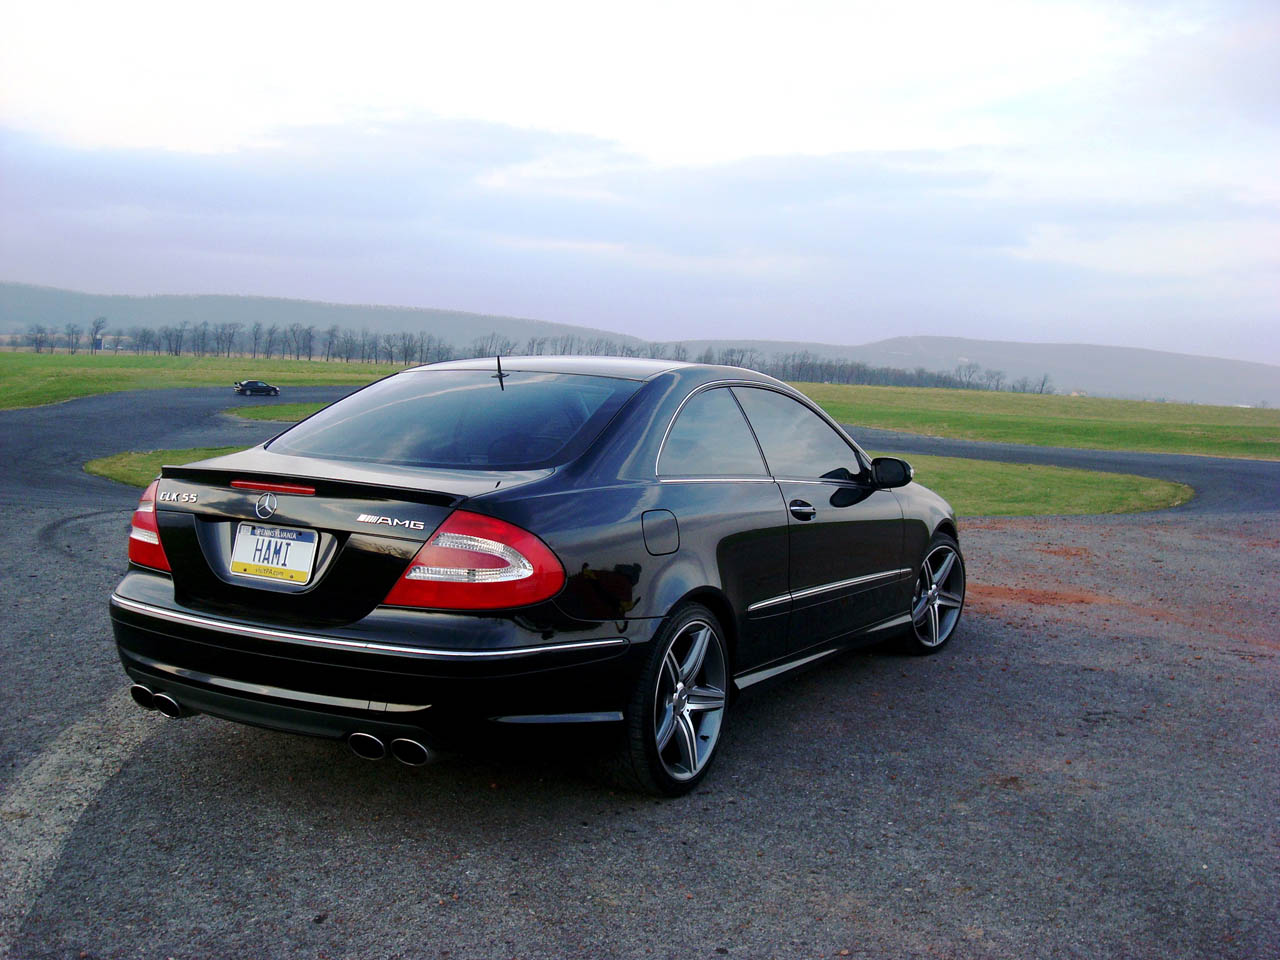 2005  Mercedes-Benz CLK55 AMG  picture, mods, upgrades